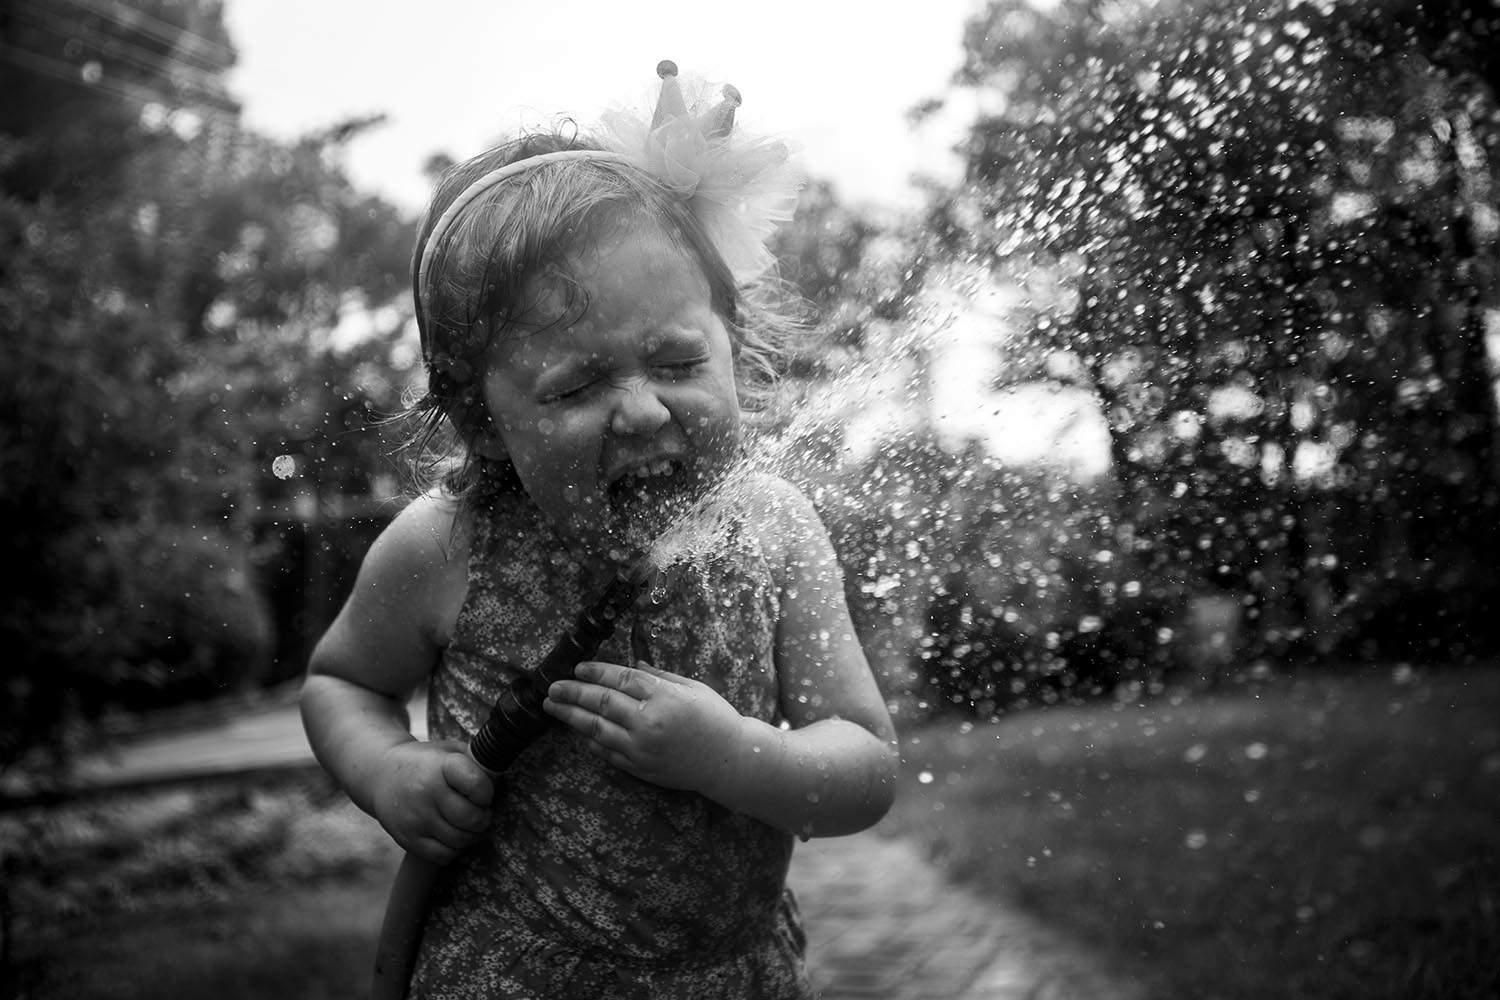 classic summertime hose child portrait in black and white